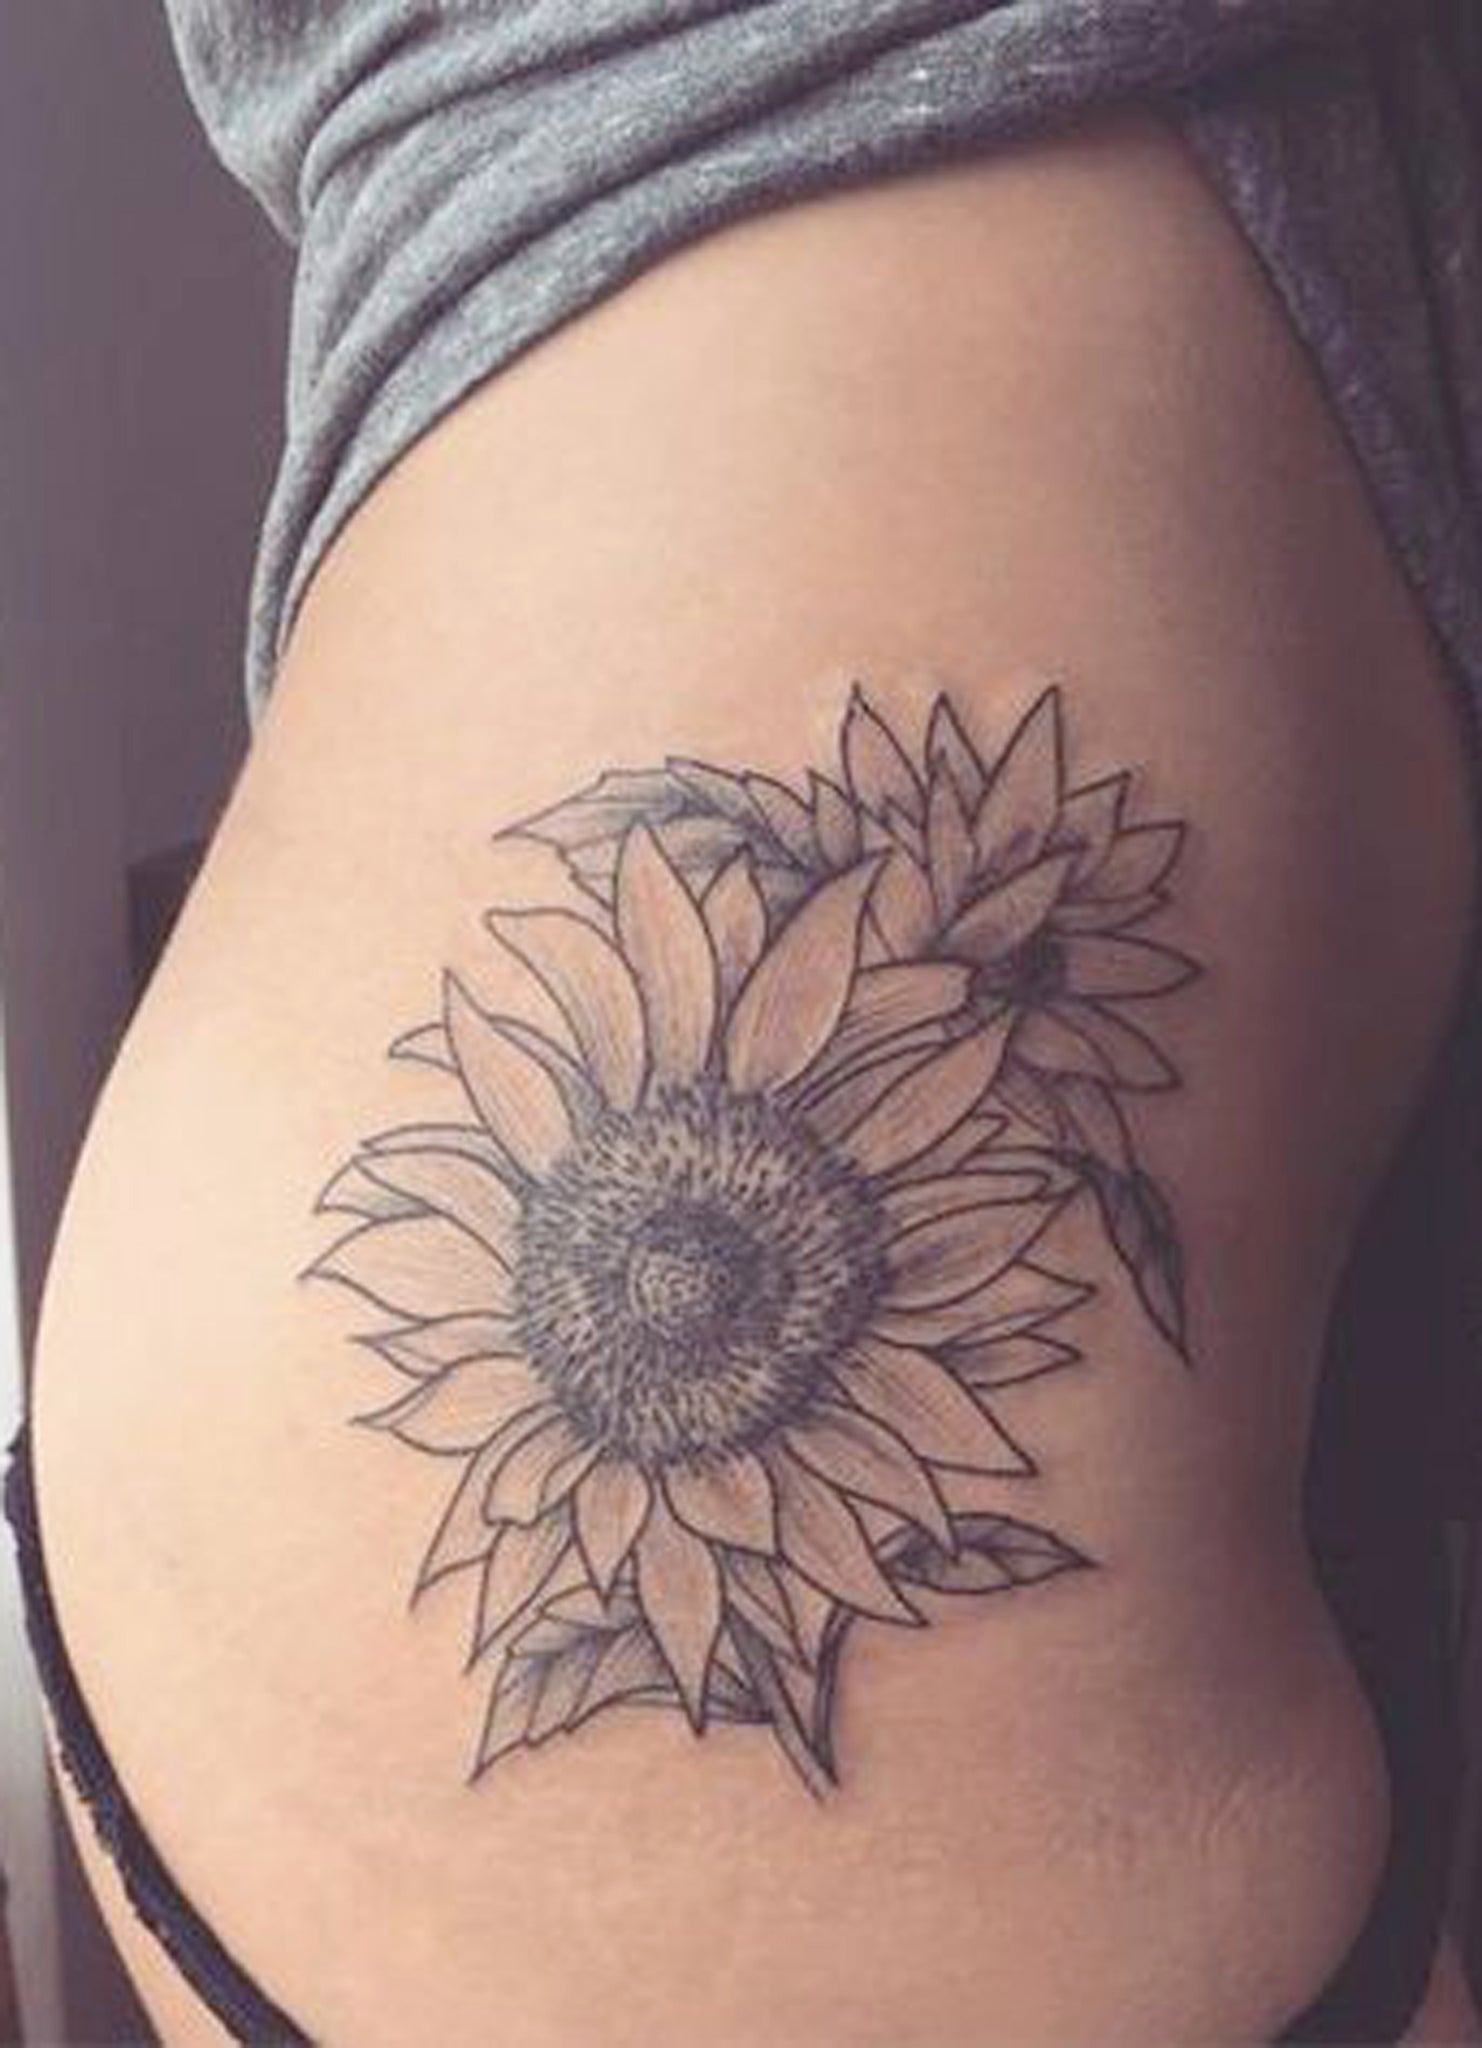 Sunflower Thigh Tattoo Ideas for Women - Black Floral Flower Side Hip Tat -  ideas del tatuaje del muslo de girasol - www.MyBodiArt.com